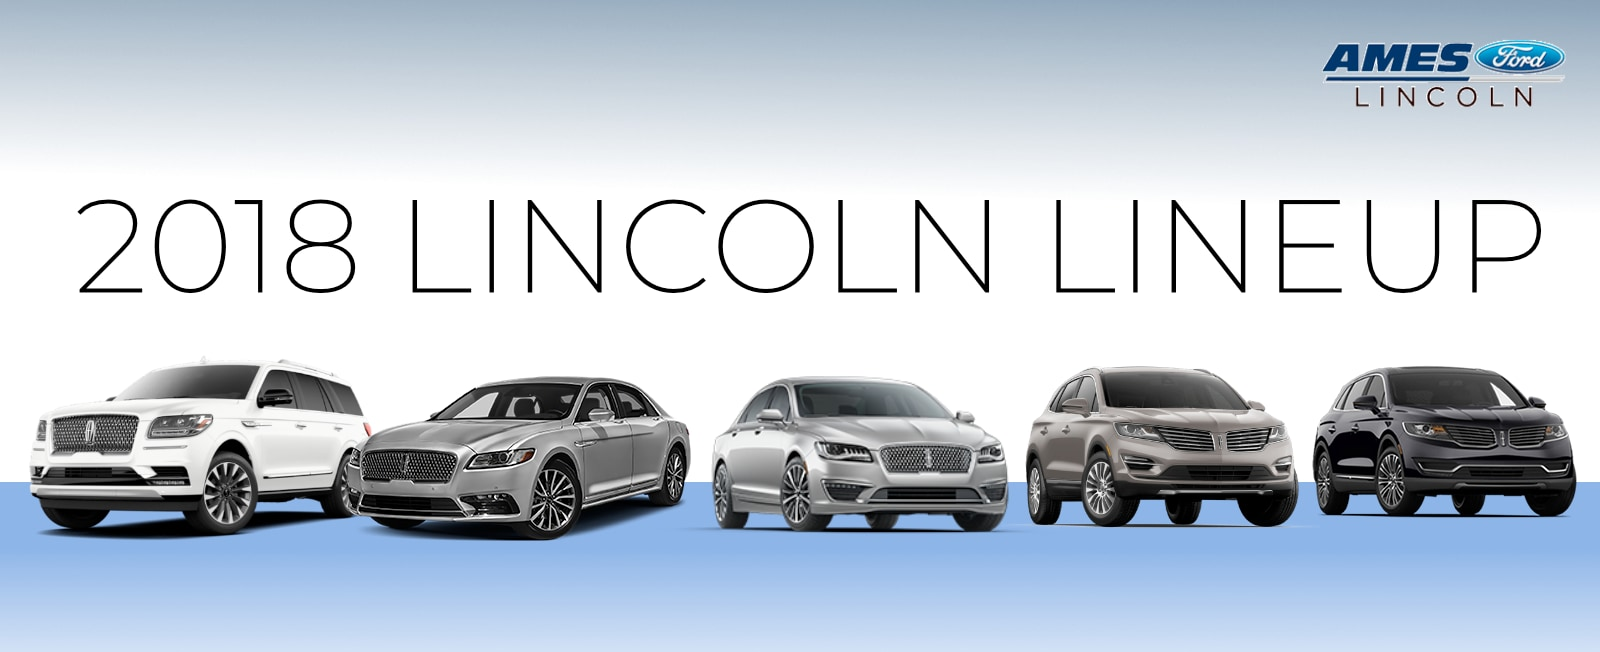 2018 Lincoln Overview Ames Ford Lincoln